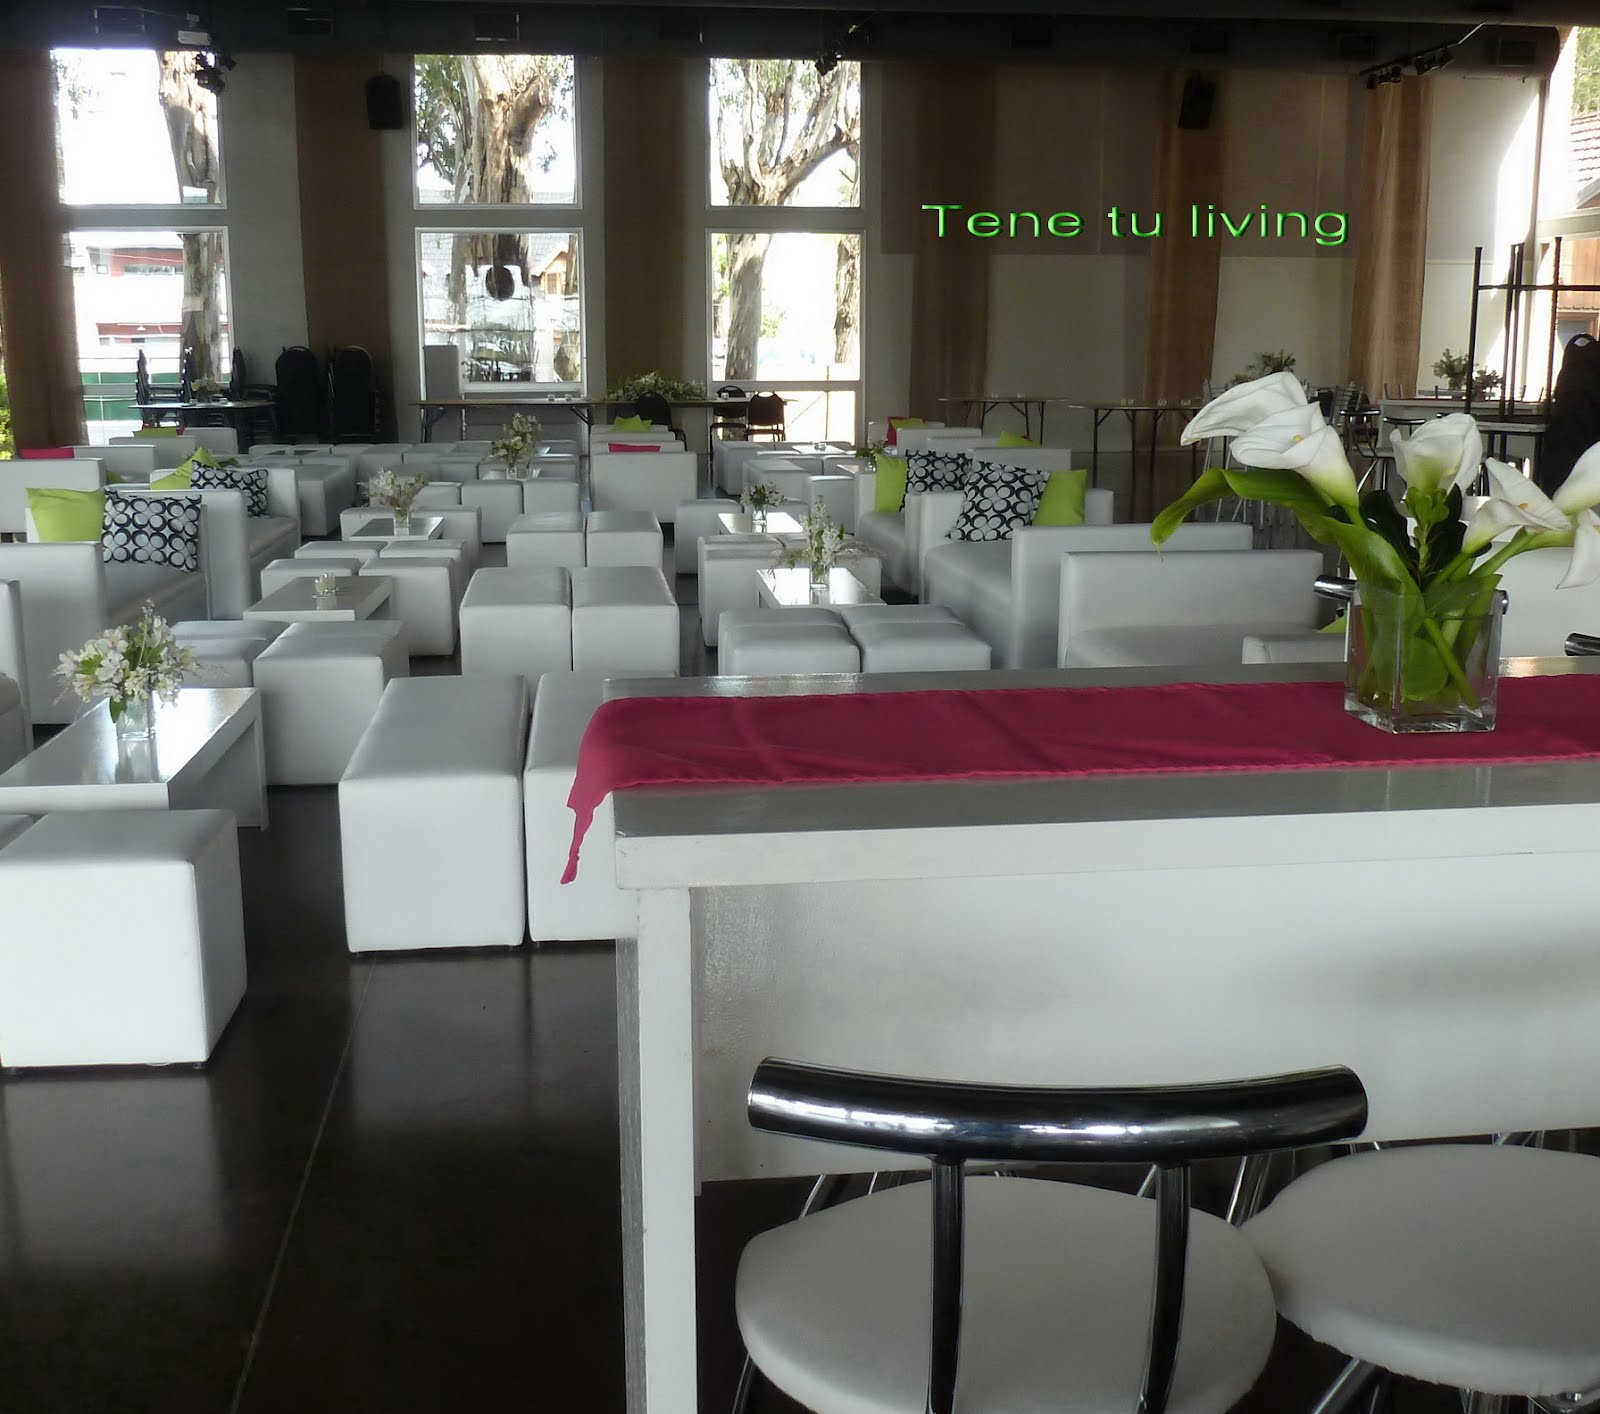 Tene tu living alquiler livings eventos for Sillas empresariales